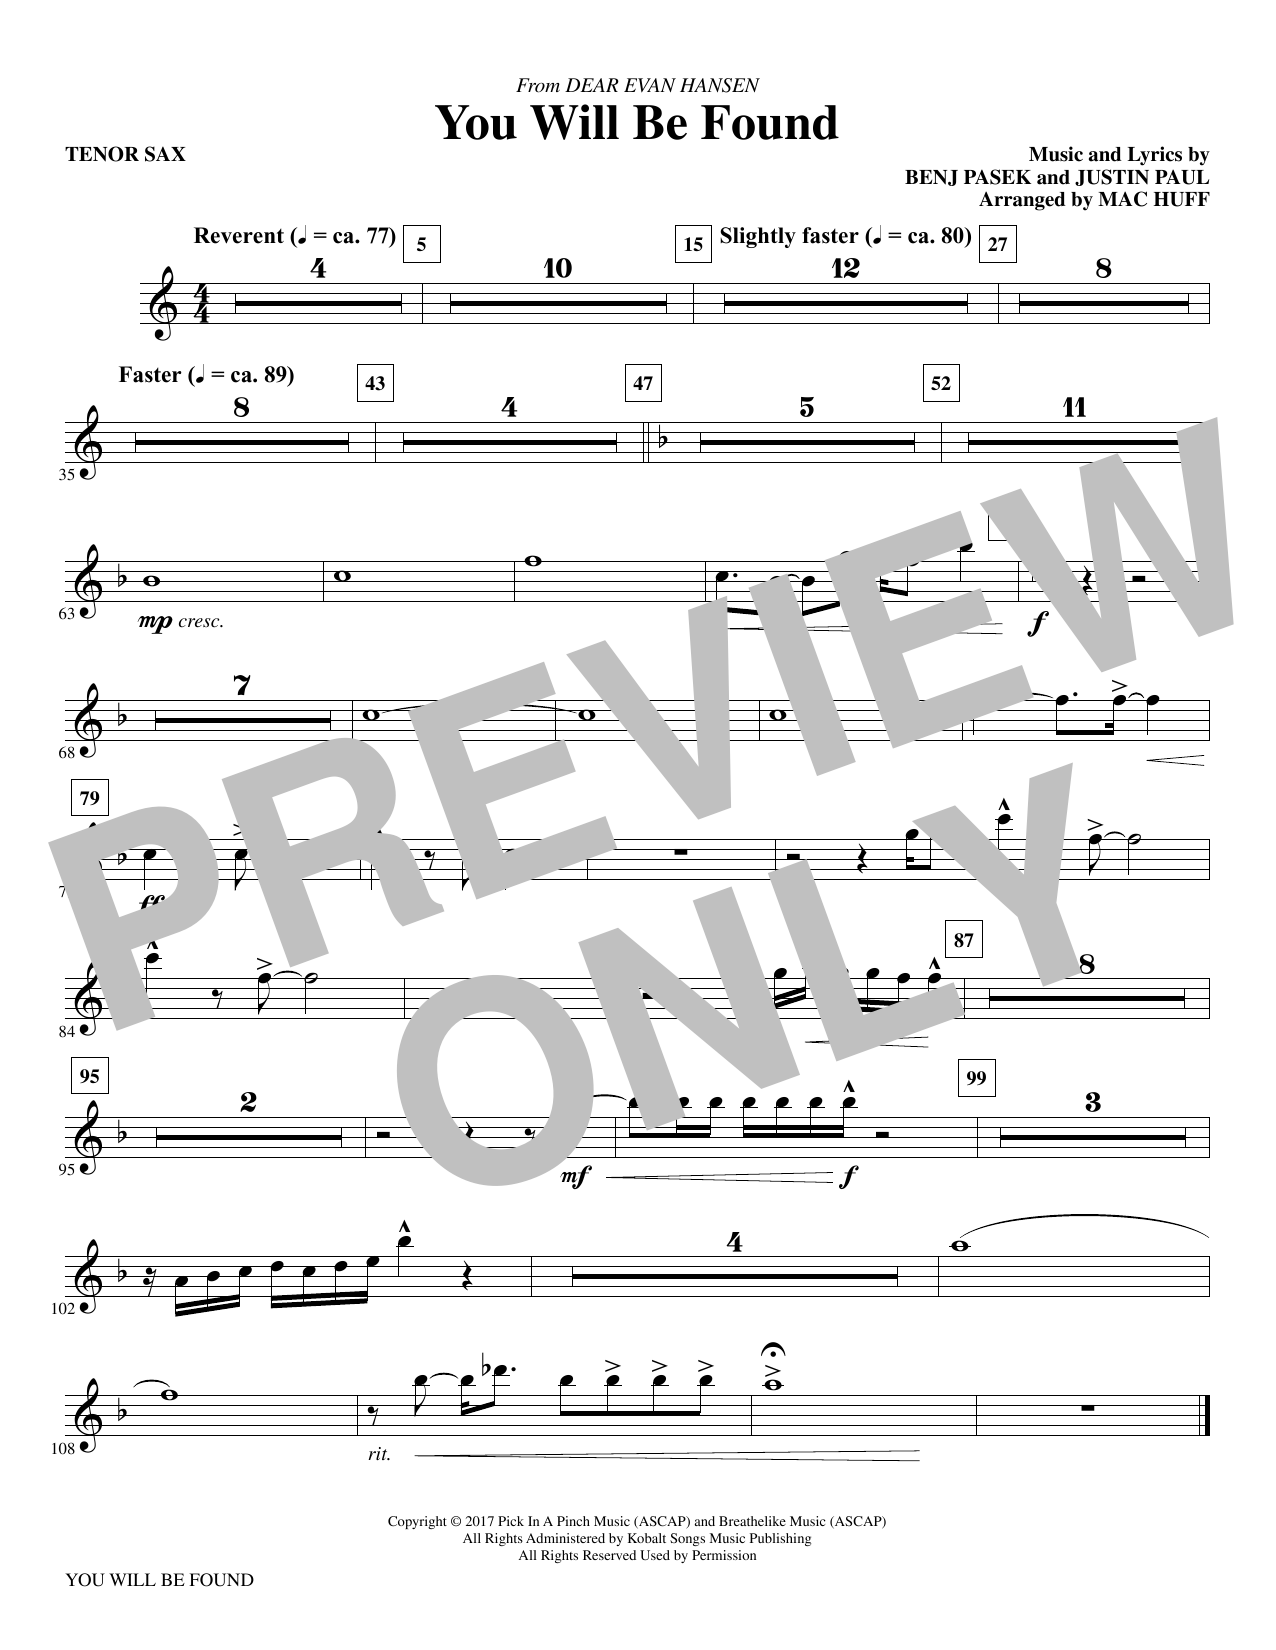 Pasek Paul You Will Be Found From Dear Evan Hansen Arr Mac Huff Tenor Saxophone Sheet Music Pdf Notes Chords Musical Show Score Choir Instrumental Pak Download Printable Sku 367232 Even when the dark comes crashing through when you need a friend to carry you when you're broken on the ground you will be found you will rise again you will rise again. fresh sheet music